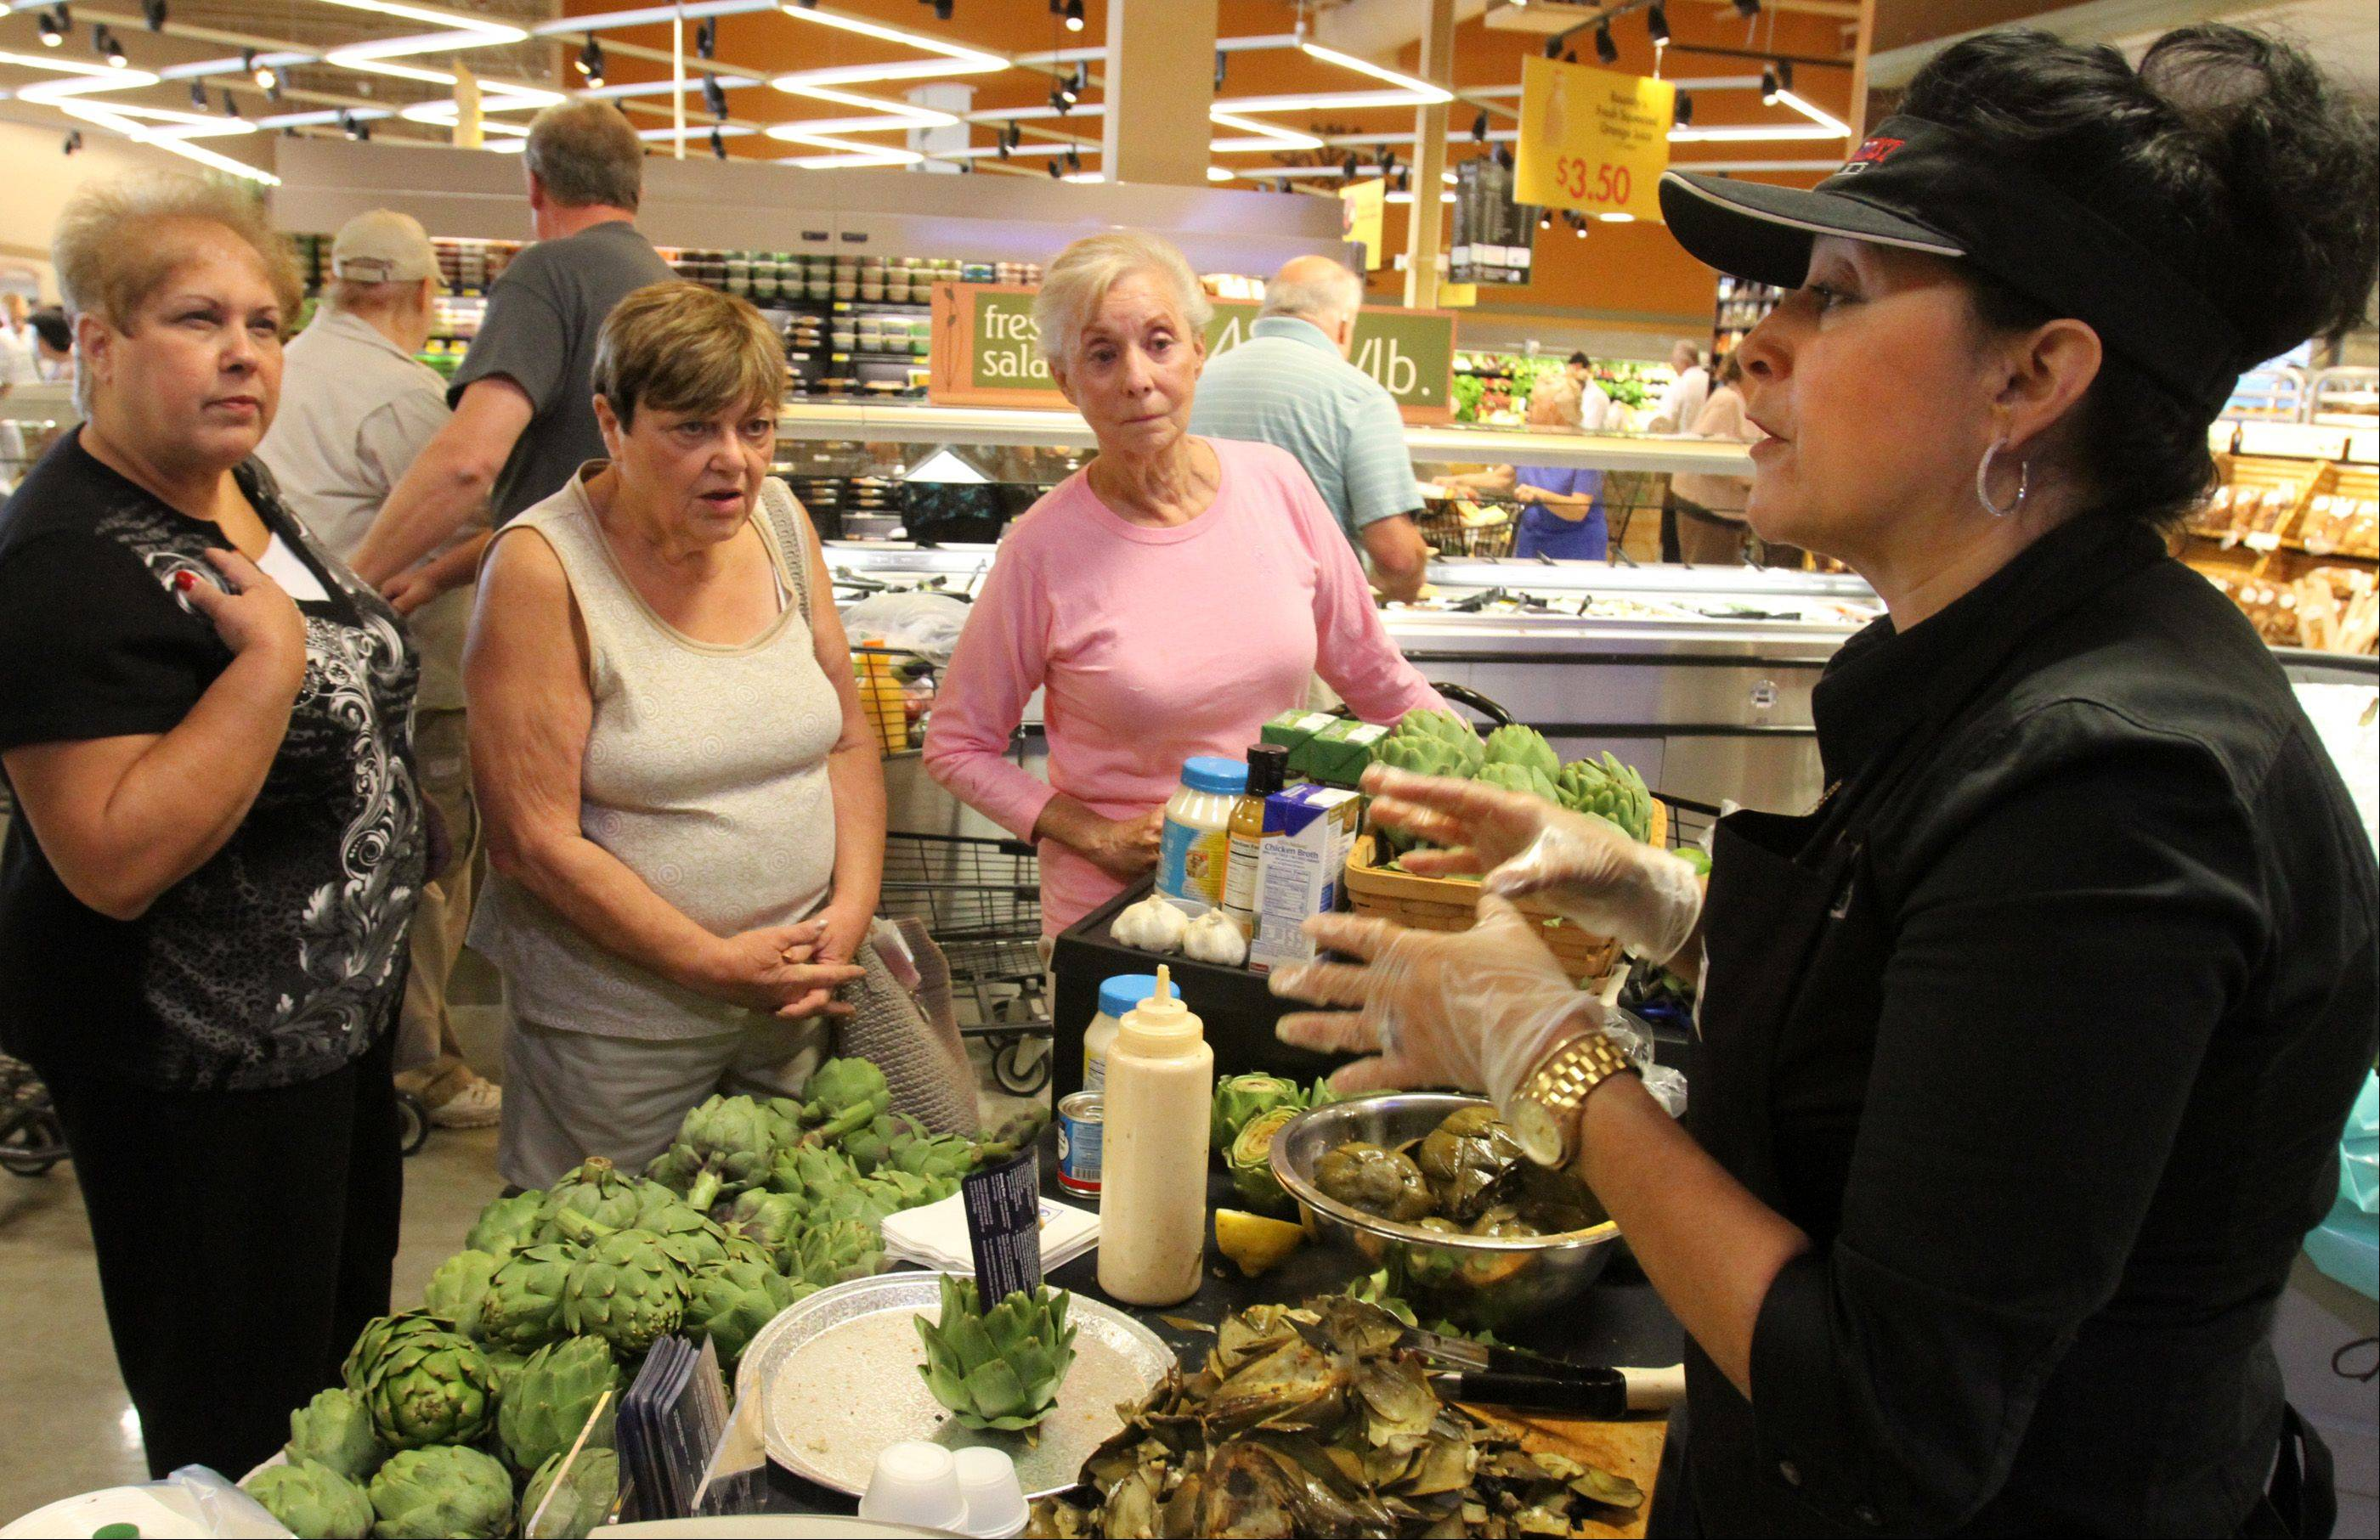 Adrienne Meier, a recipe designer with Ocean Mist, right, explains cooking tips for artichoke to customers including Jenny Hulseberg of Bartlett, center-right, at Mariano's Fresh Market in Hoffman Estates on Tuesday.